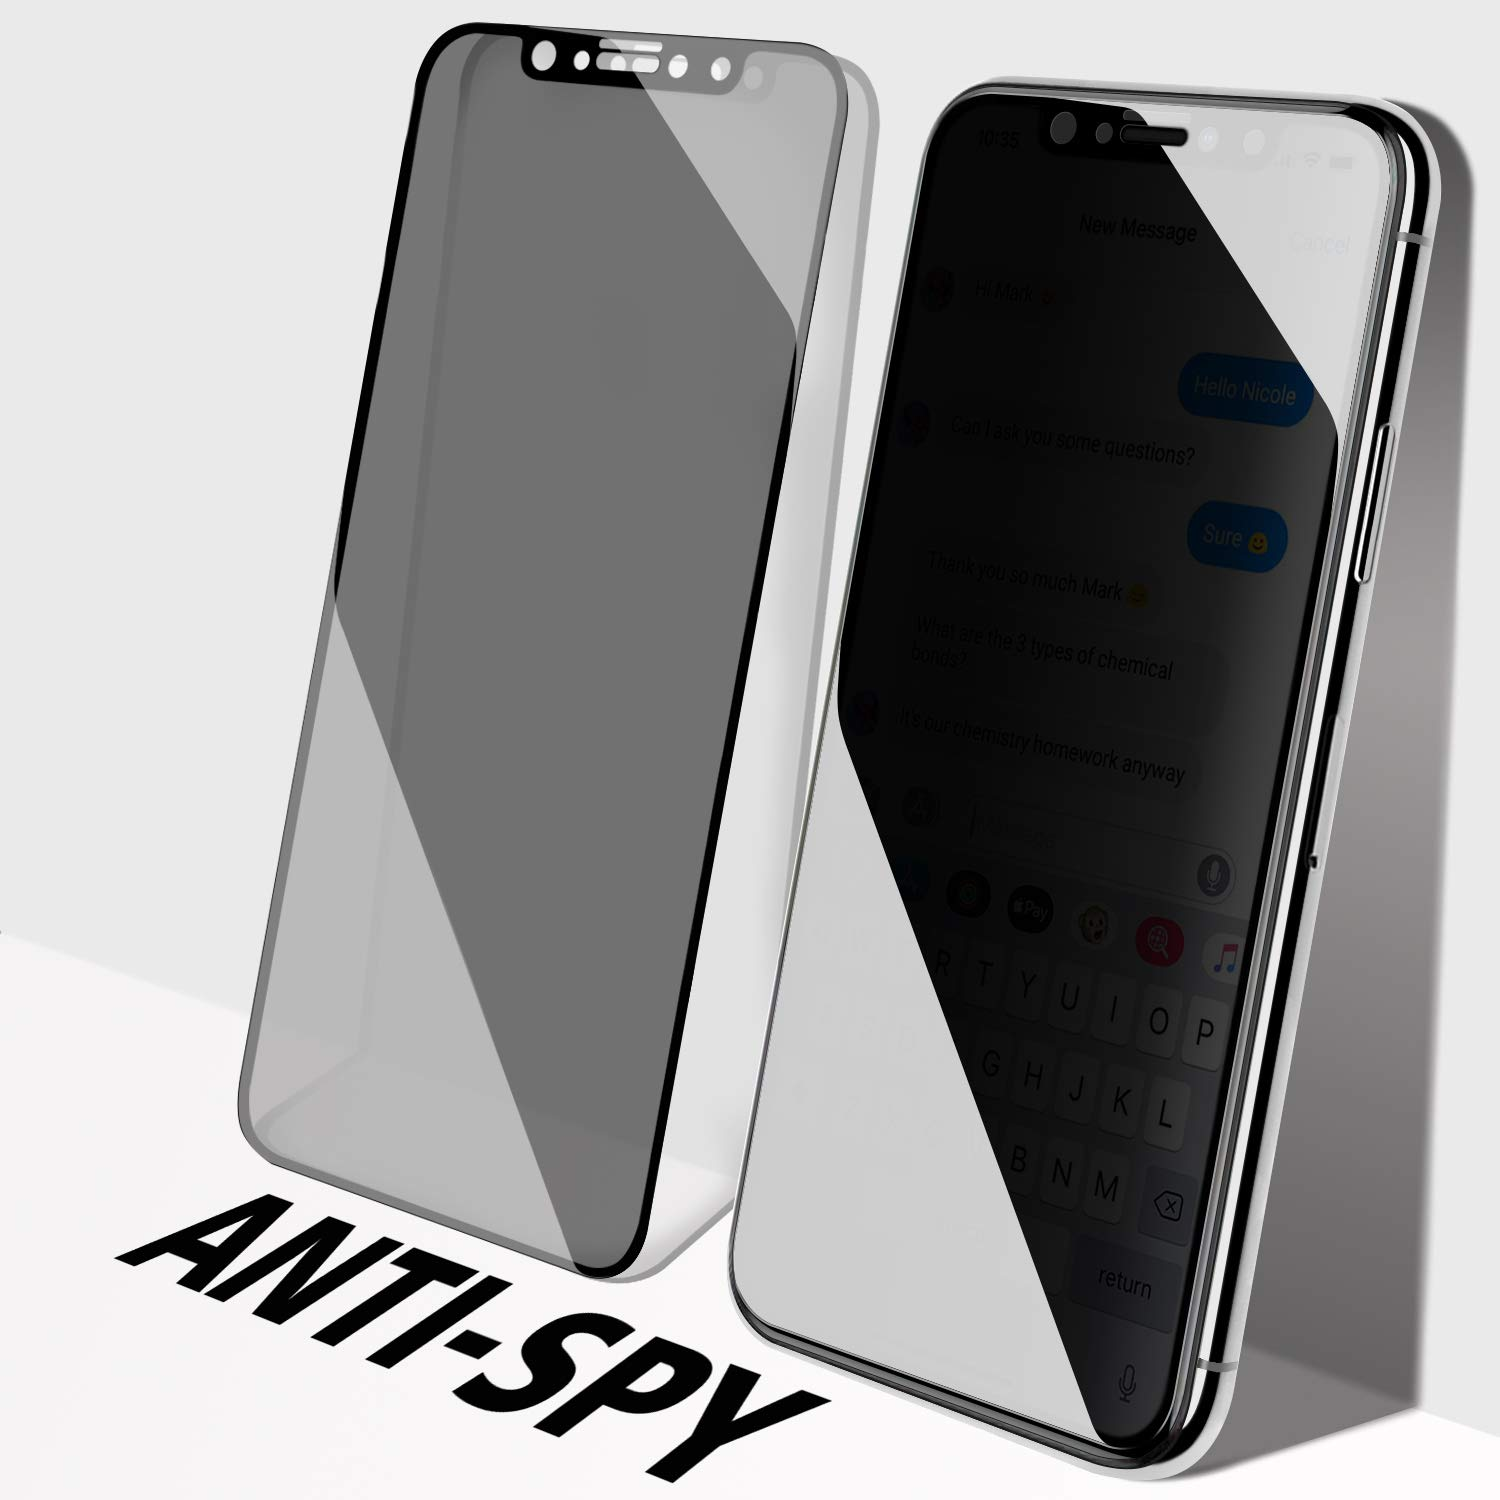 [2 Pack] Privacy Screen Protector for iPhone 11 Pro/iPhone Xs/iPhone X, SMAPP, [5.8 inch] [Anti-Spy] Tempered Glass, Case Friendly, Easy Install, Anti-Scratch